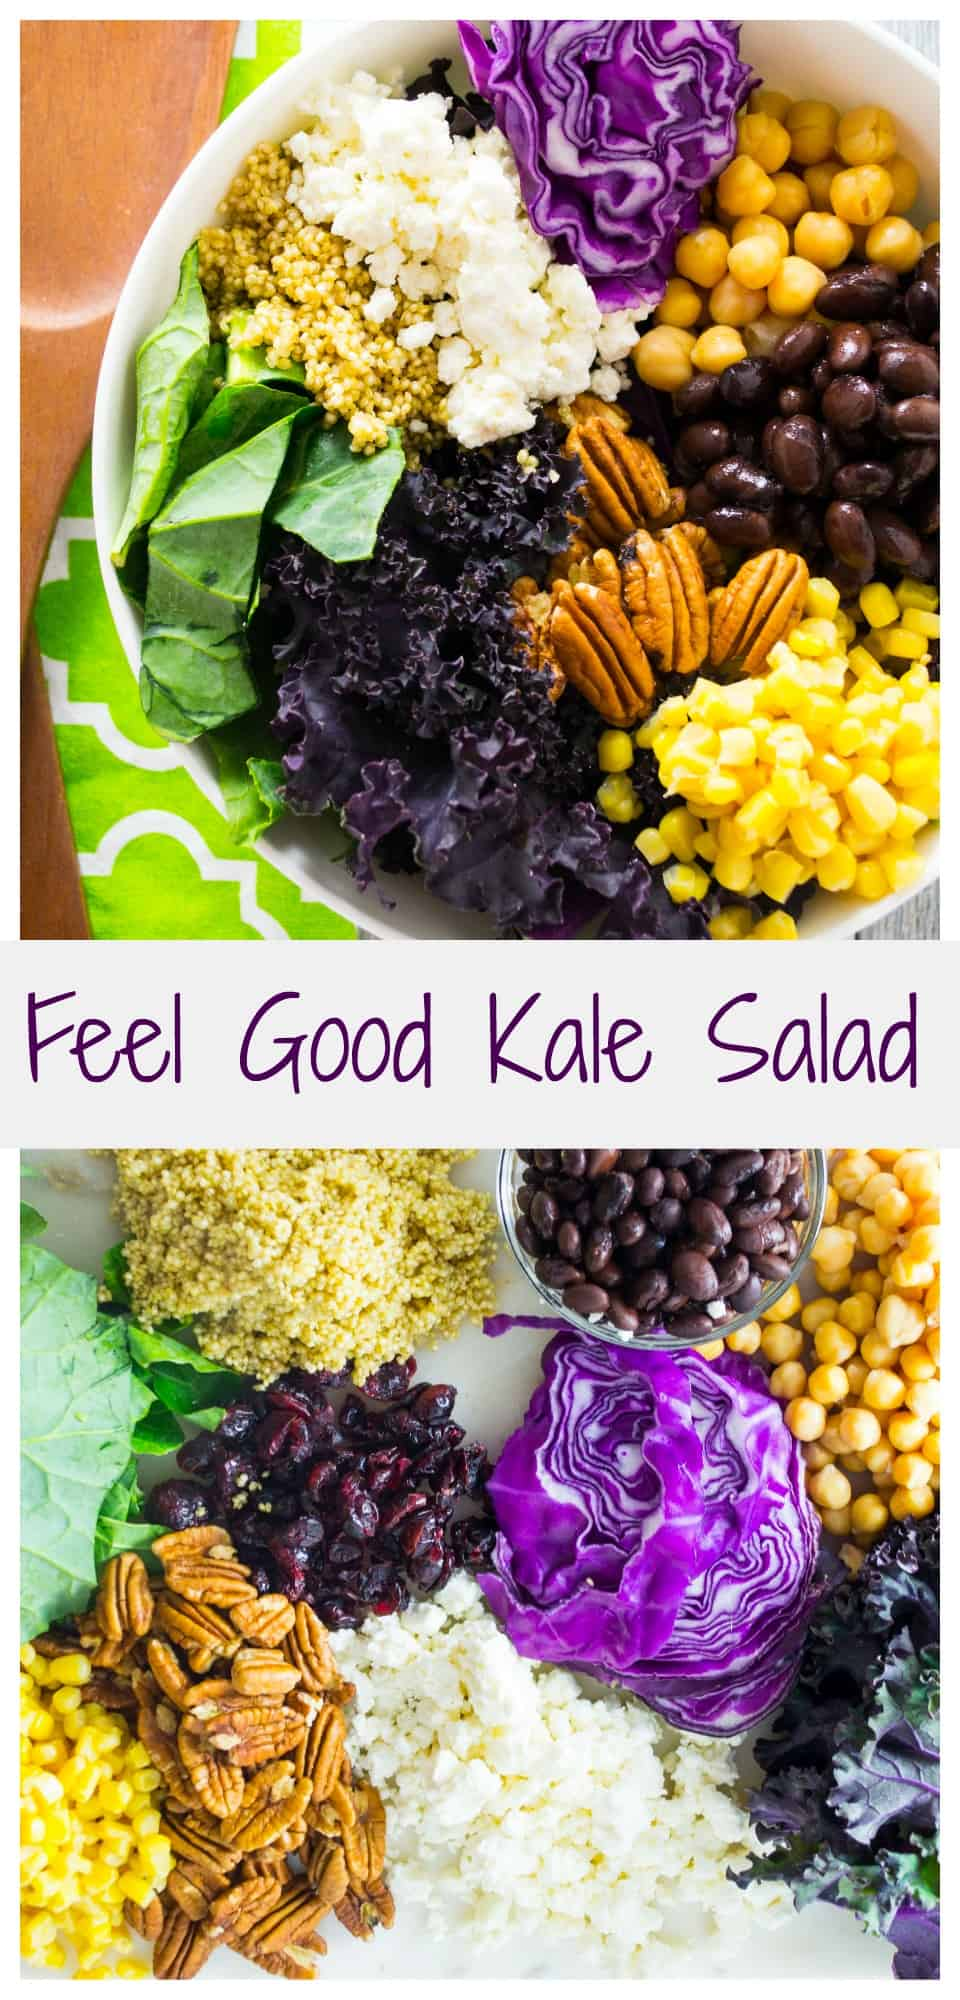 Feel Good Easy Kale Salad | Feel Good Easy Kale Salad makes sticking with those New Years resolutions all worth while. It tastes great, looks pretty and instantly makes you feel better knowing you are eating on the right track! | Pack Momma | https://www.packmomma.com